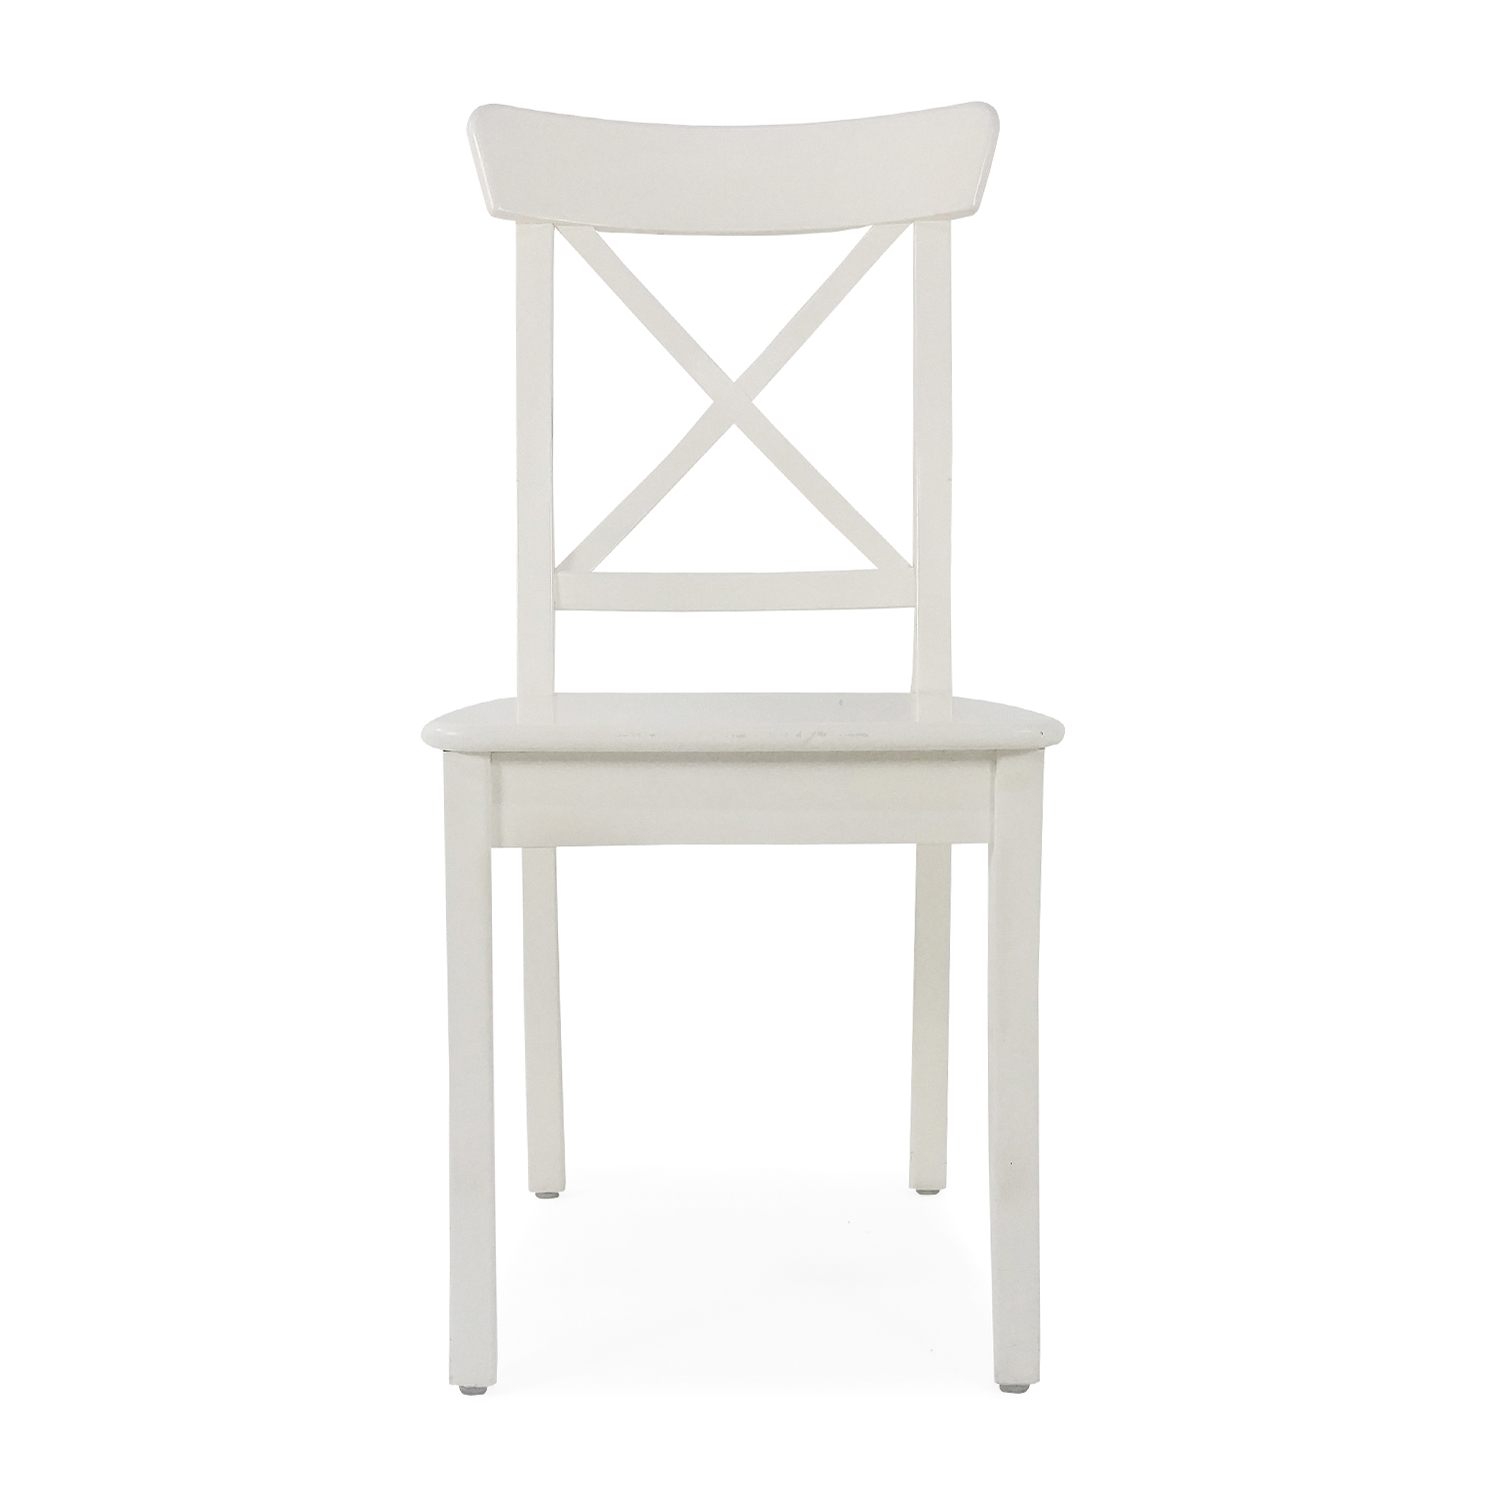 Ikea White Dining Chair